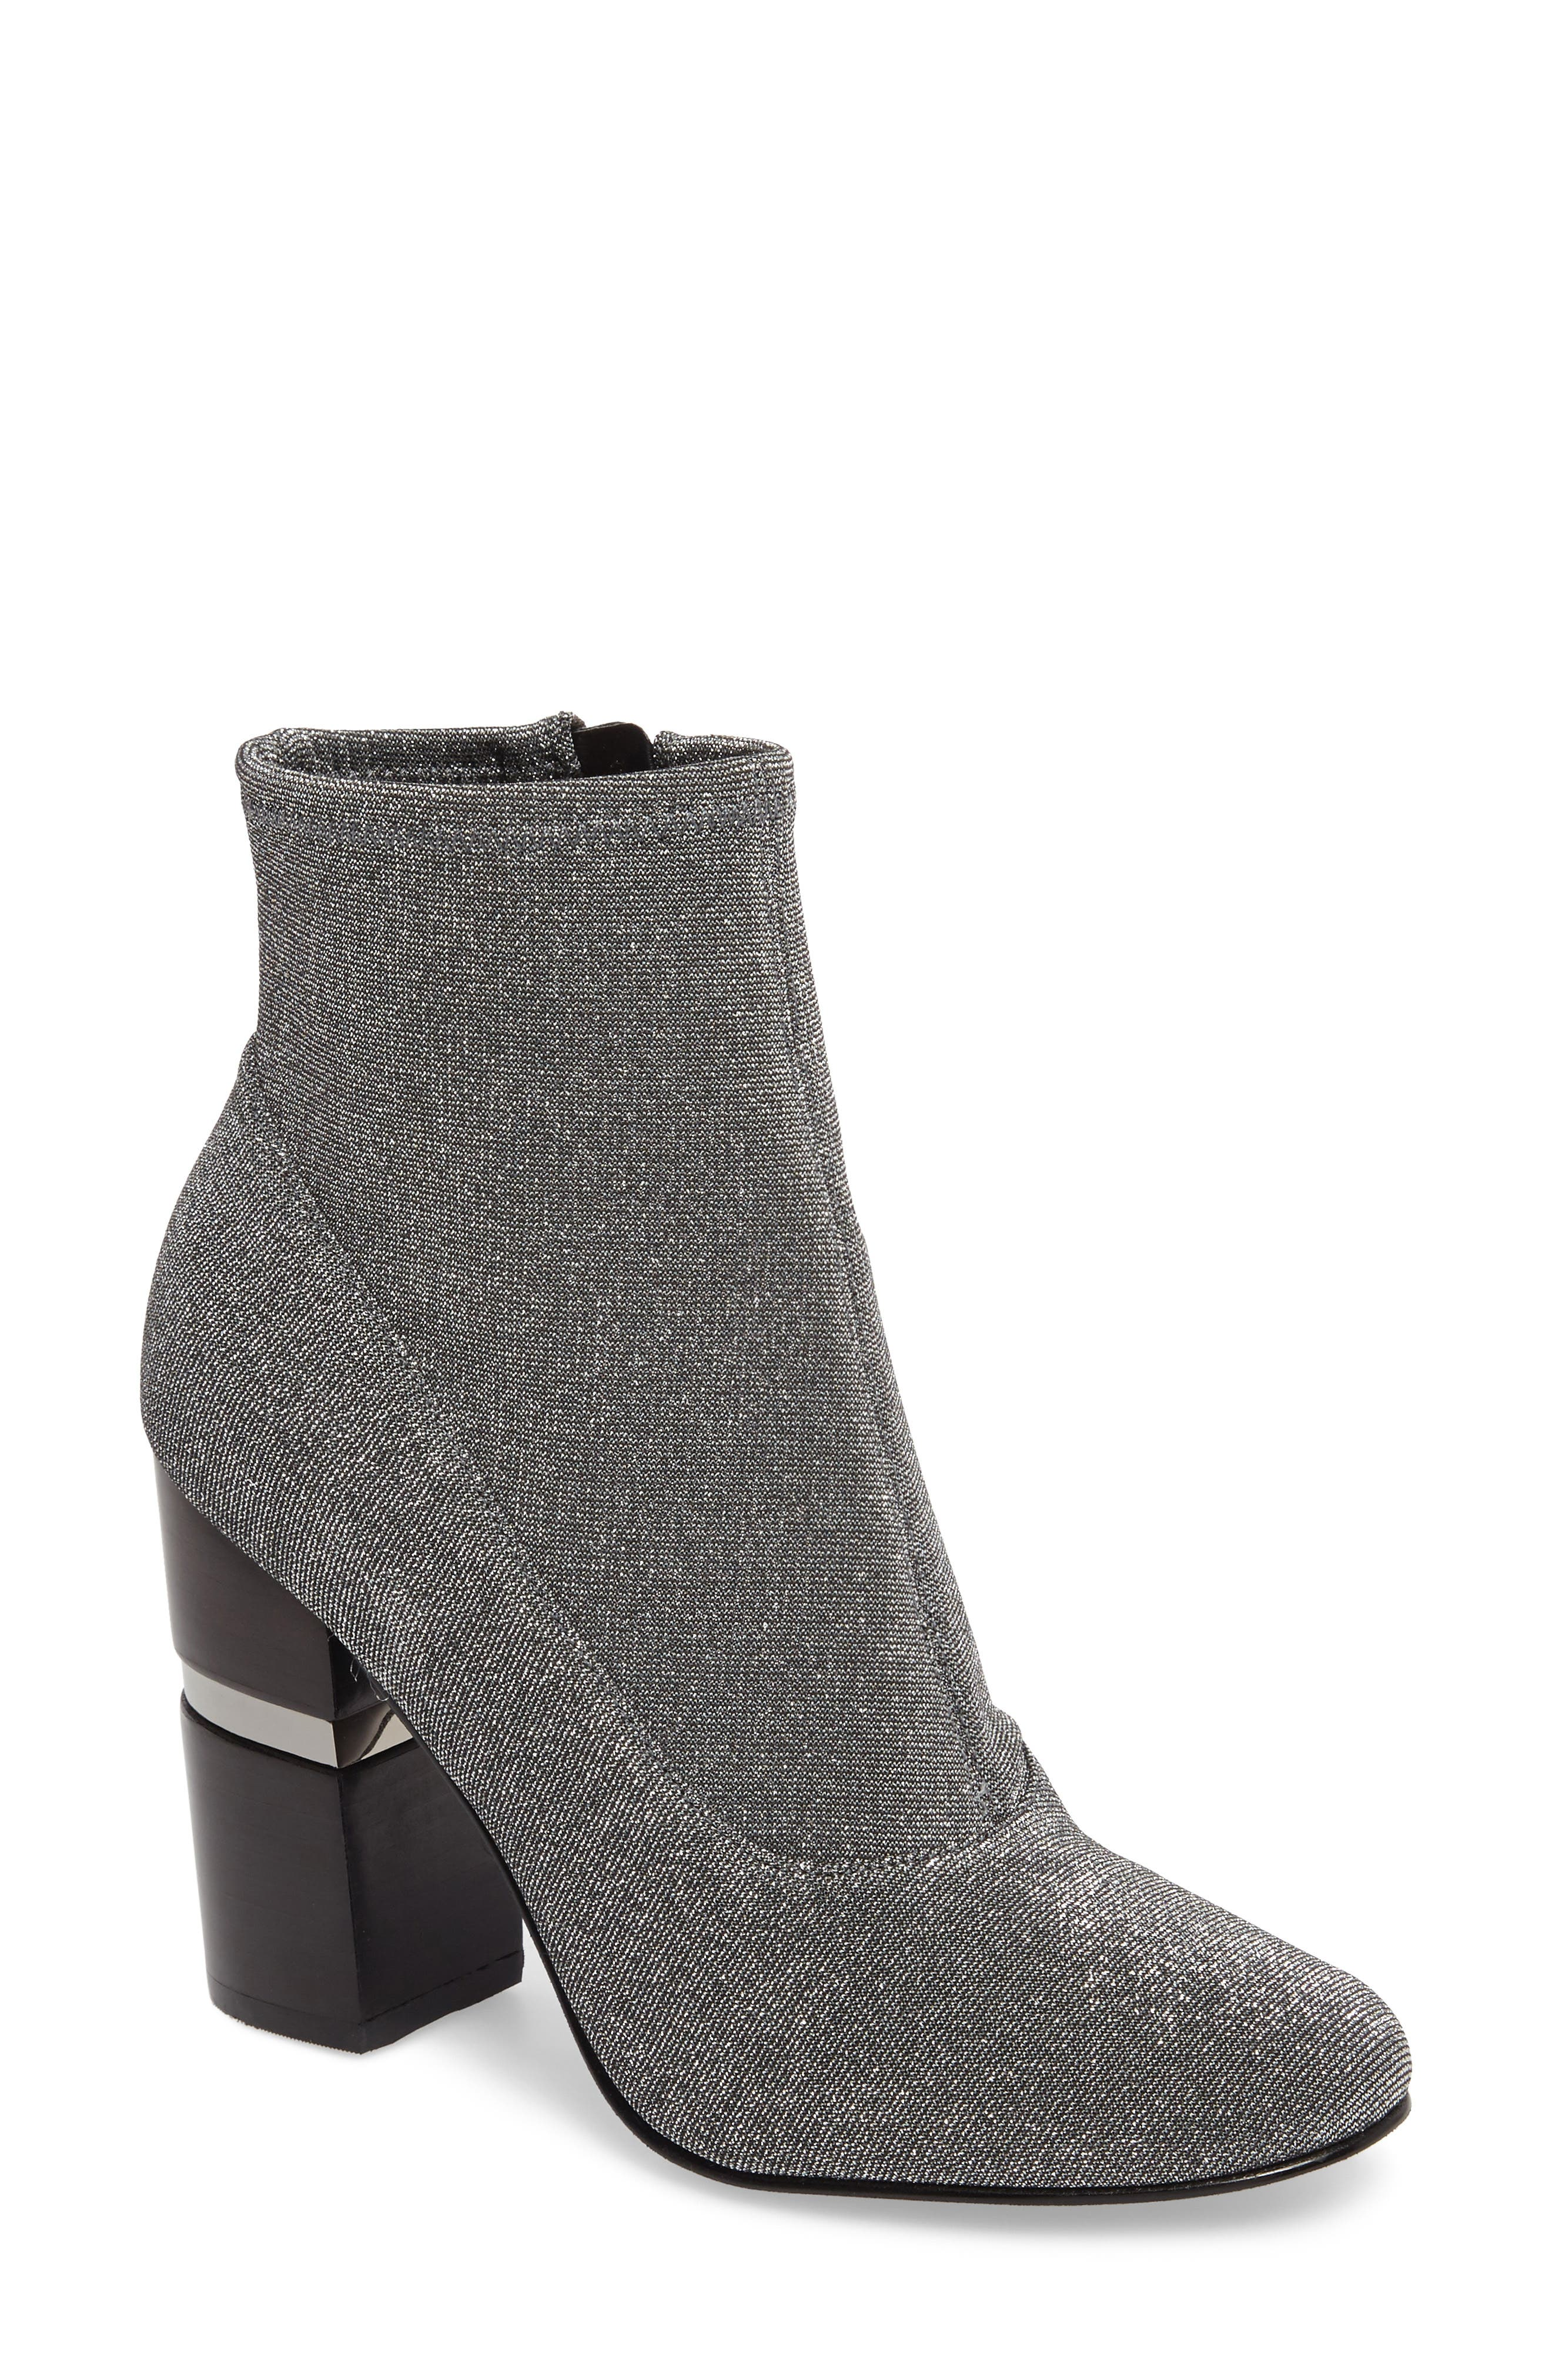 Padda Embellished Stretch Bootie,                         Main,                         color, Silver Glitter Fabric